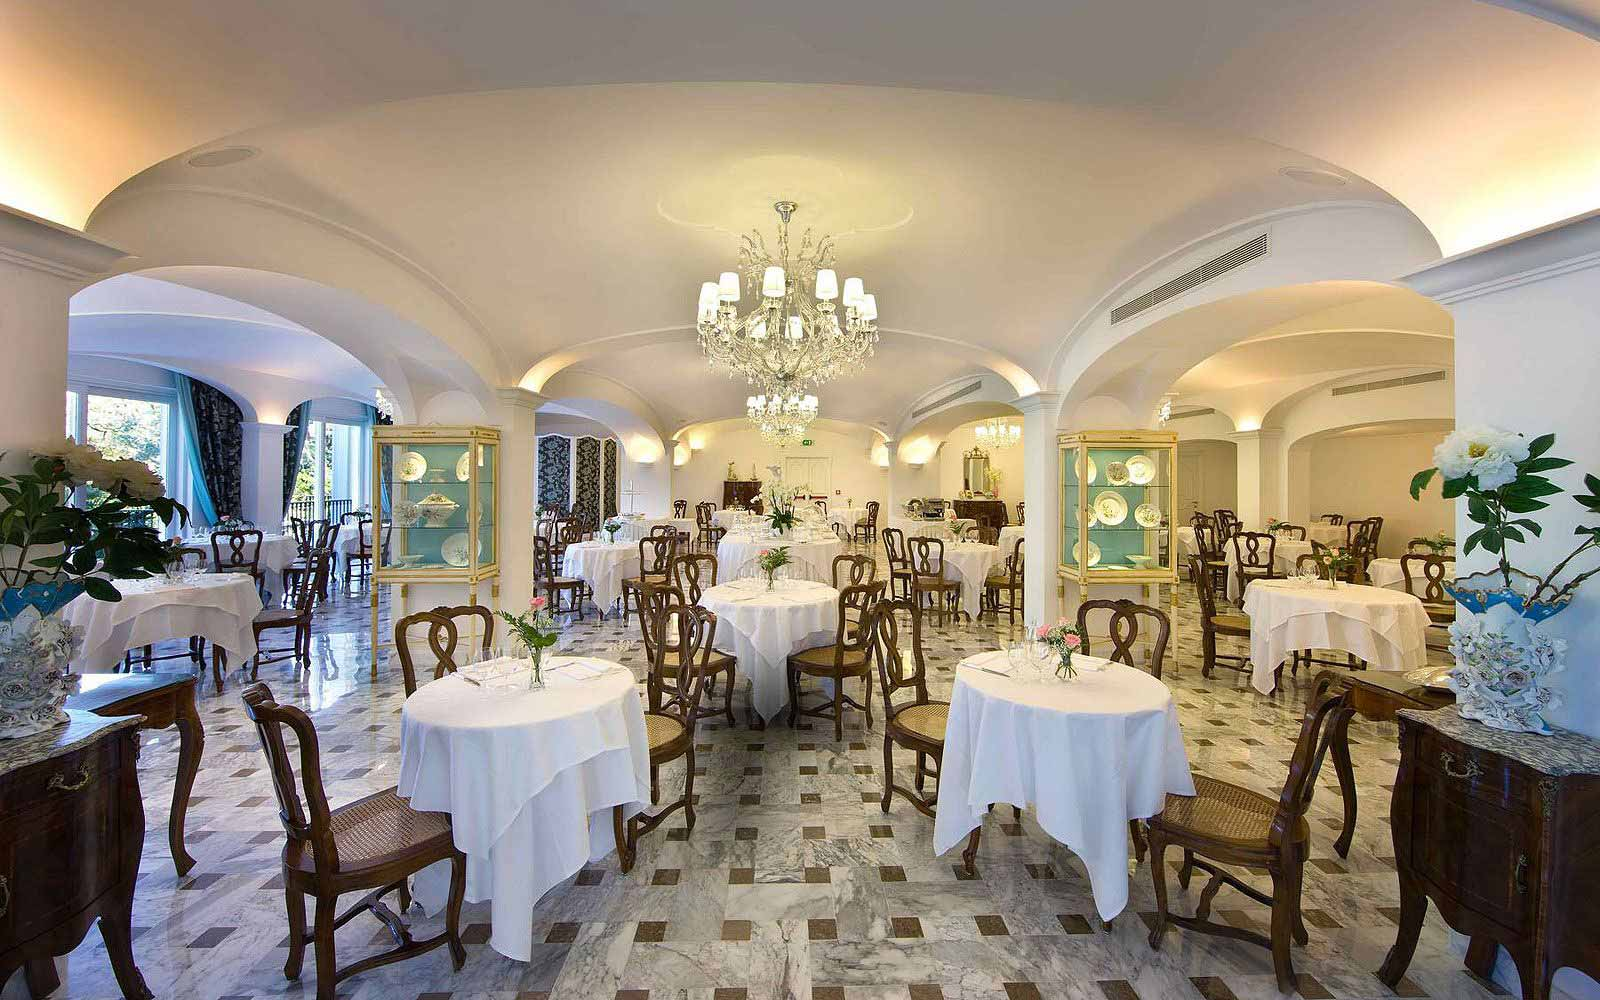 Tiffany Restaurant at the Grand Hotel La Favorita